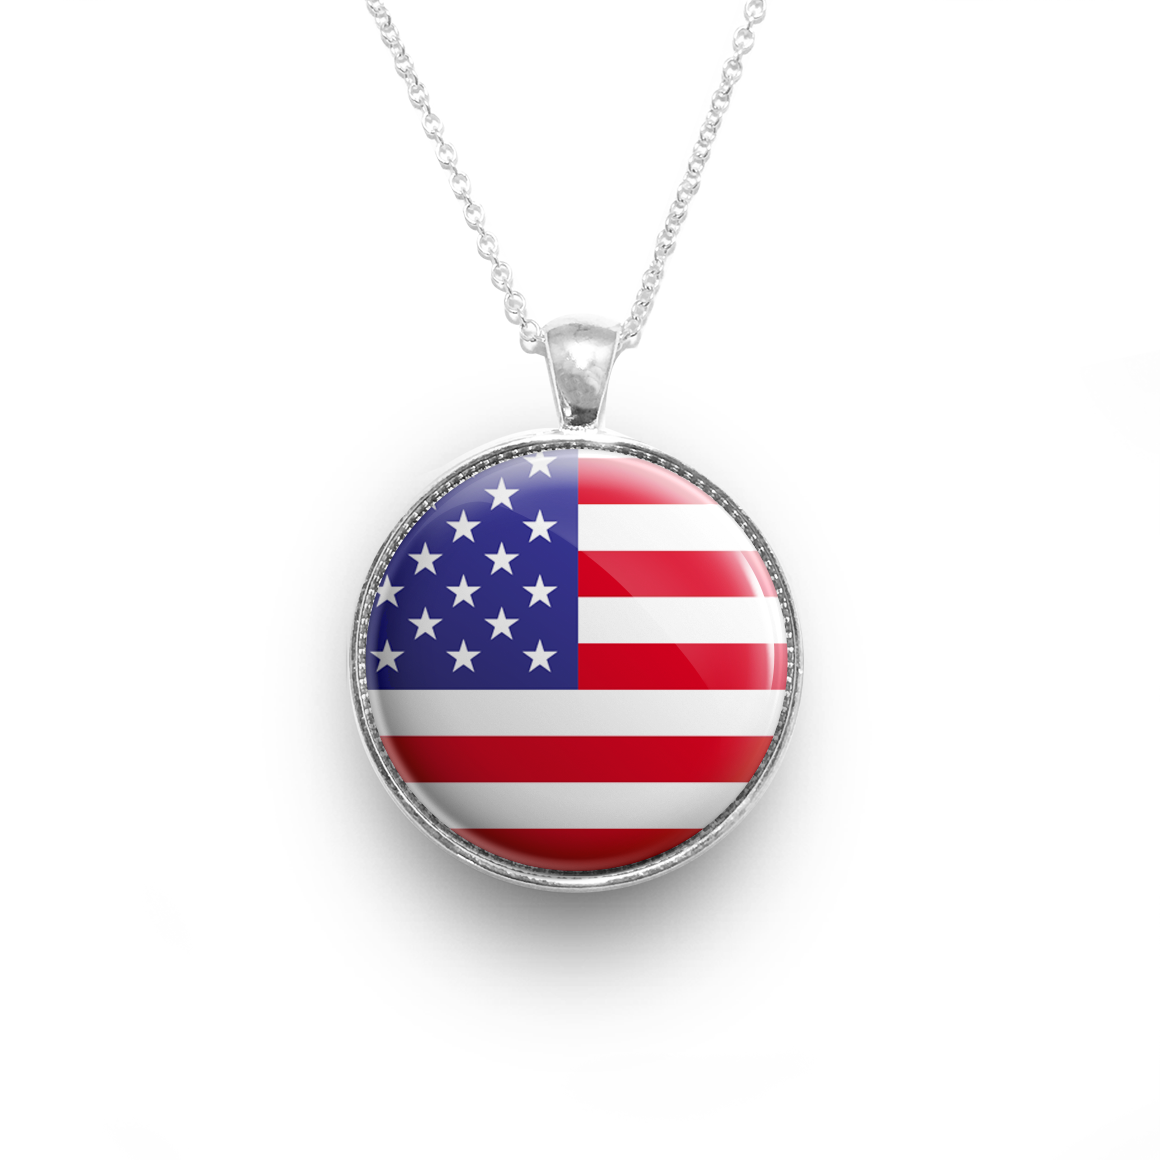 extend collier from american steel jewelry hipster chain symbol pendant flag item stainless jewellery new usa necklace mens necklaces men in